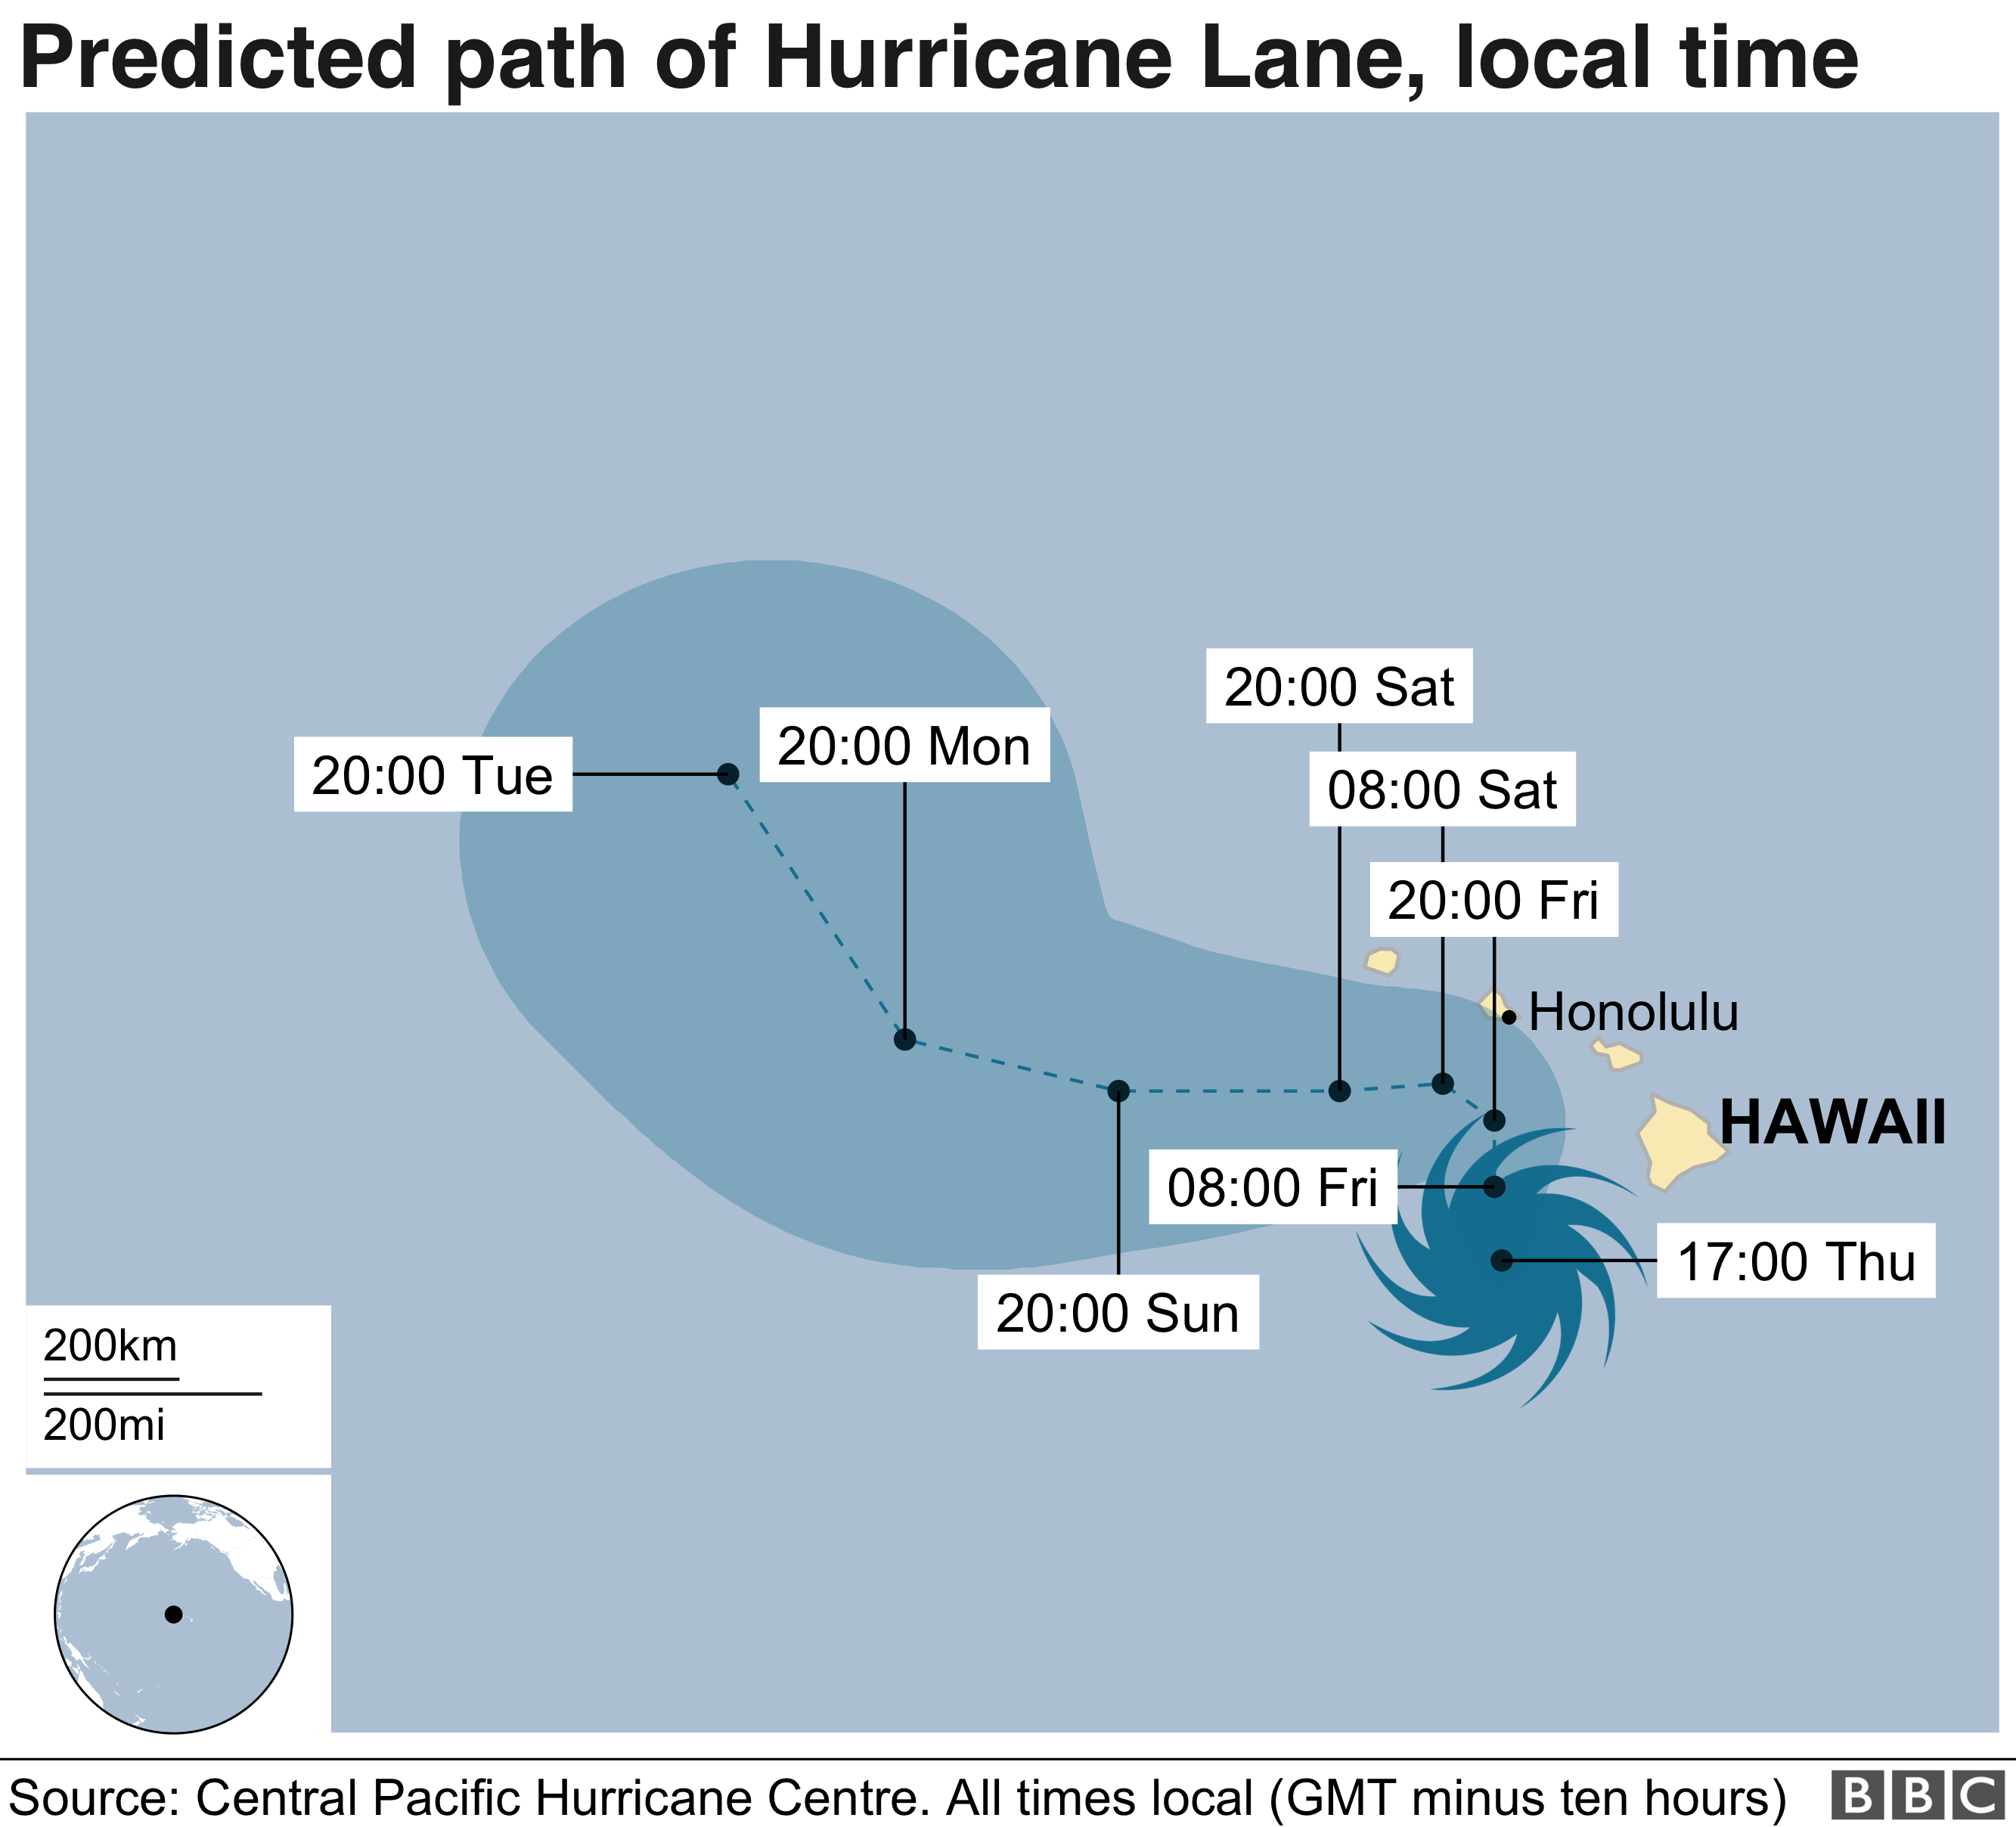 Map showing predicted path of Hurricane Lane